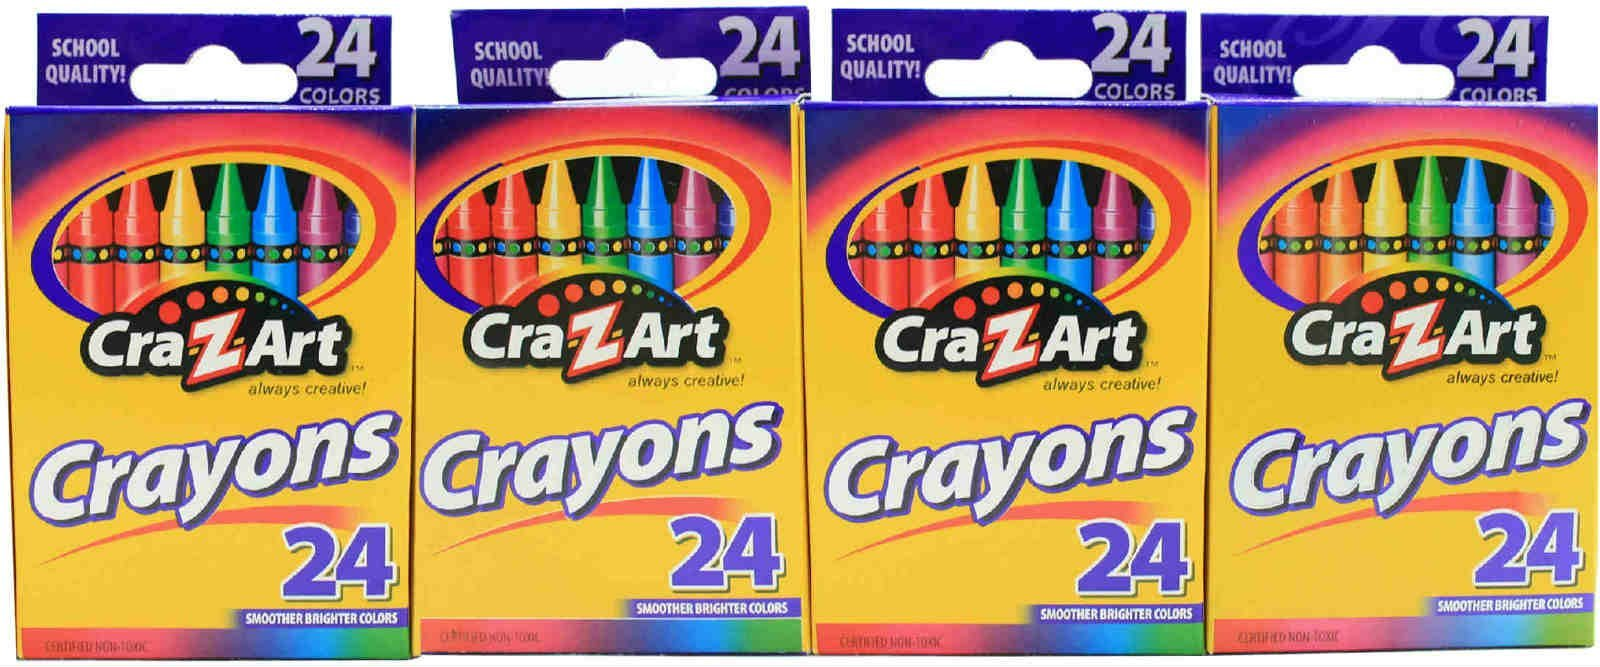 24 Pack Cra-Z-Art Crayons Non-Toxic Color Coloring School Supplies (Pack of 4) Comes with Free How to Live Stress Free Ebook